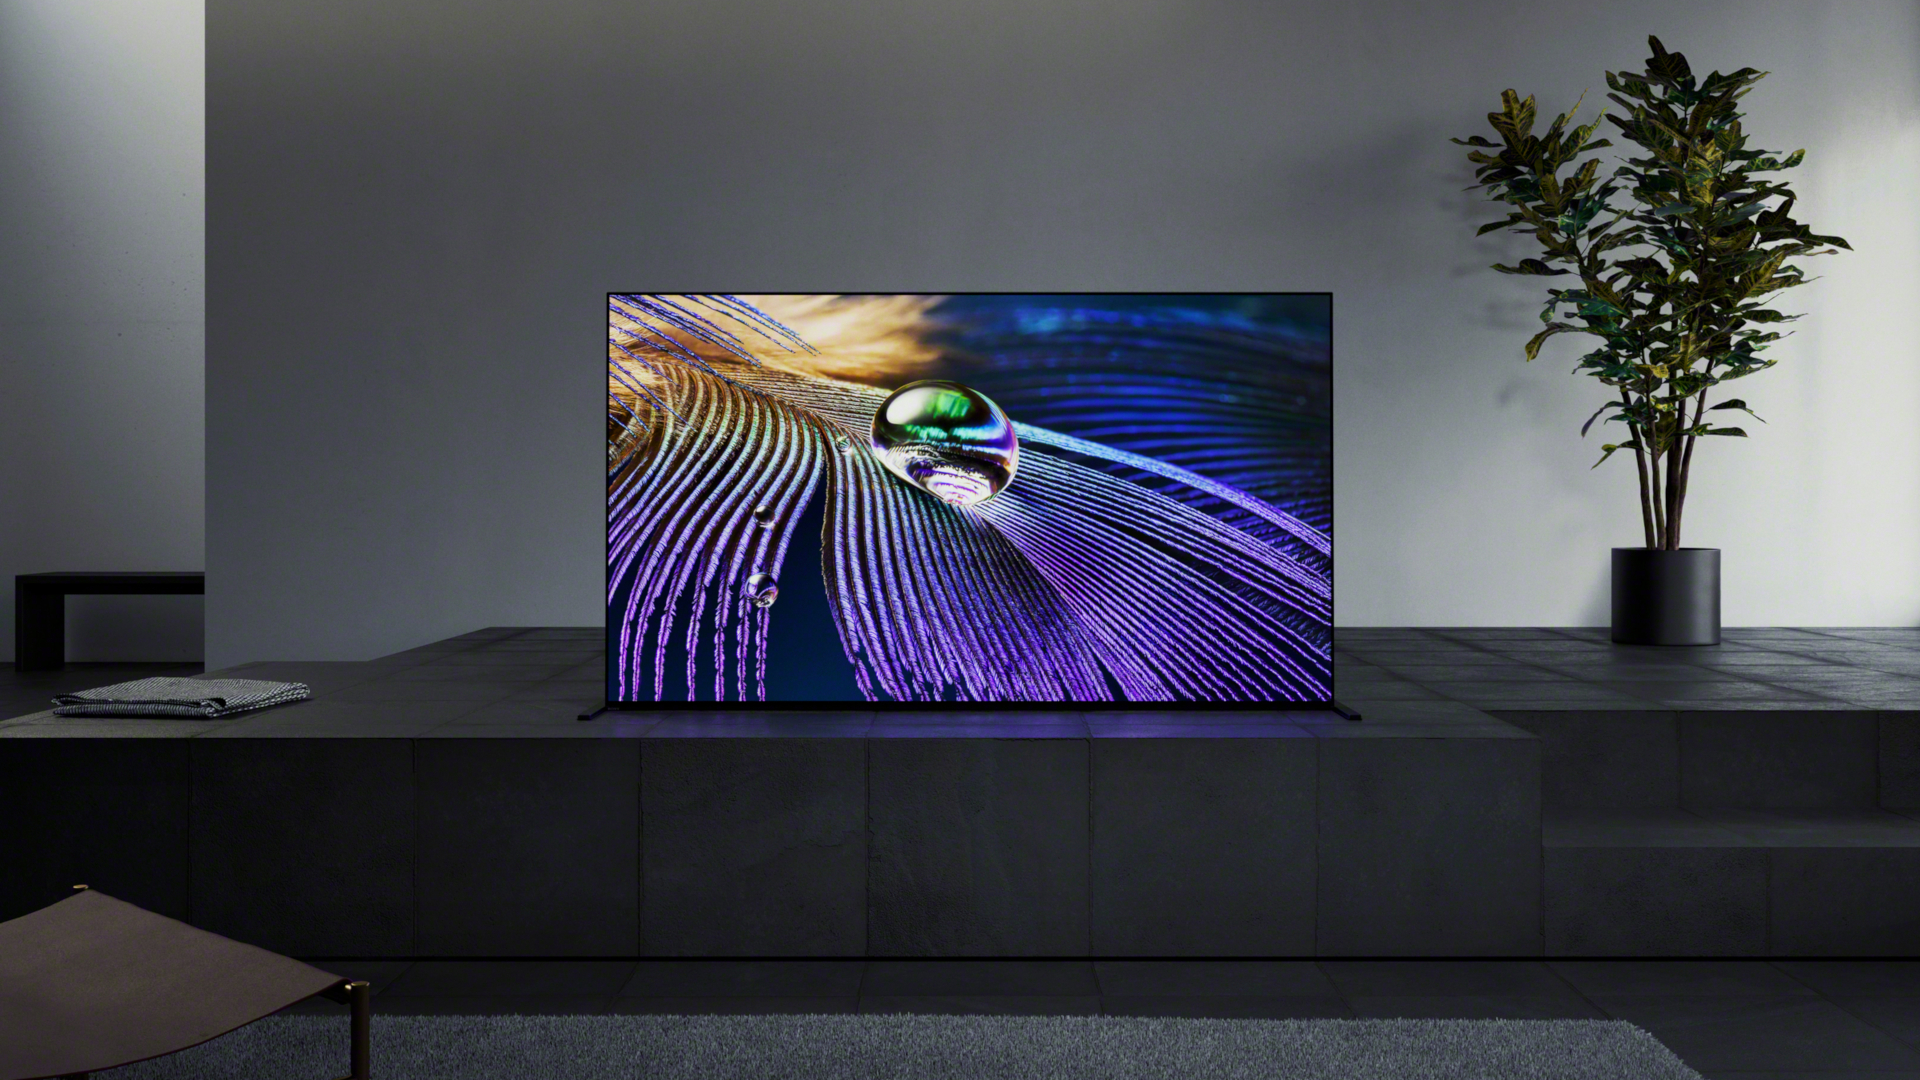 Sony A90J OLED on a black counter